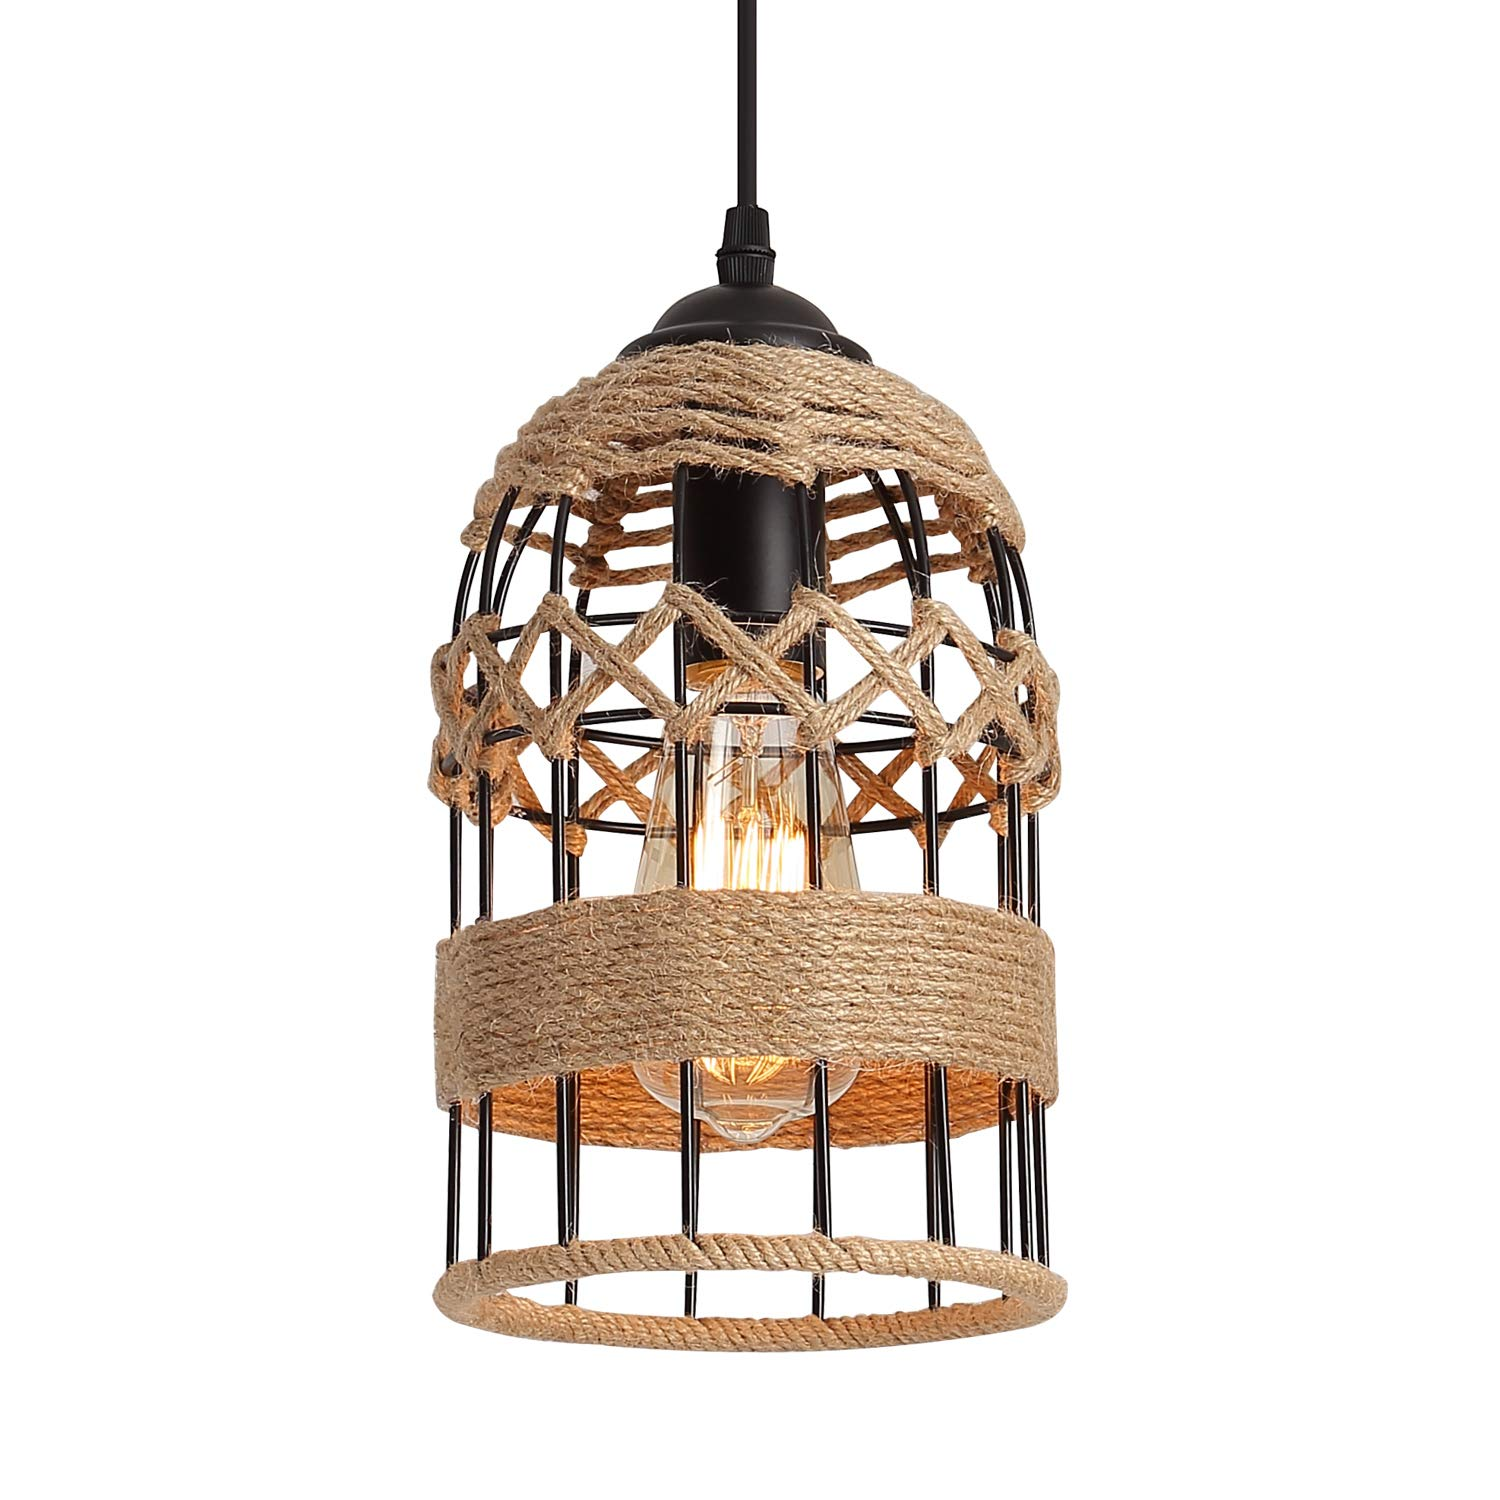 Rustic Woven Cage Pendant Light, One-Light Industrial Metal Hemp Rope Mini Pendant Lighting Fixture for Kitchen Island Cafe Bar Farmhouse, Black